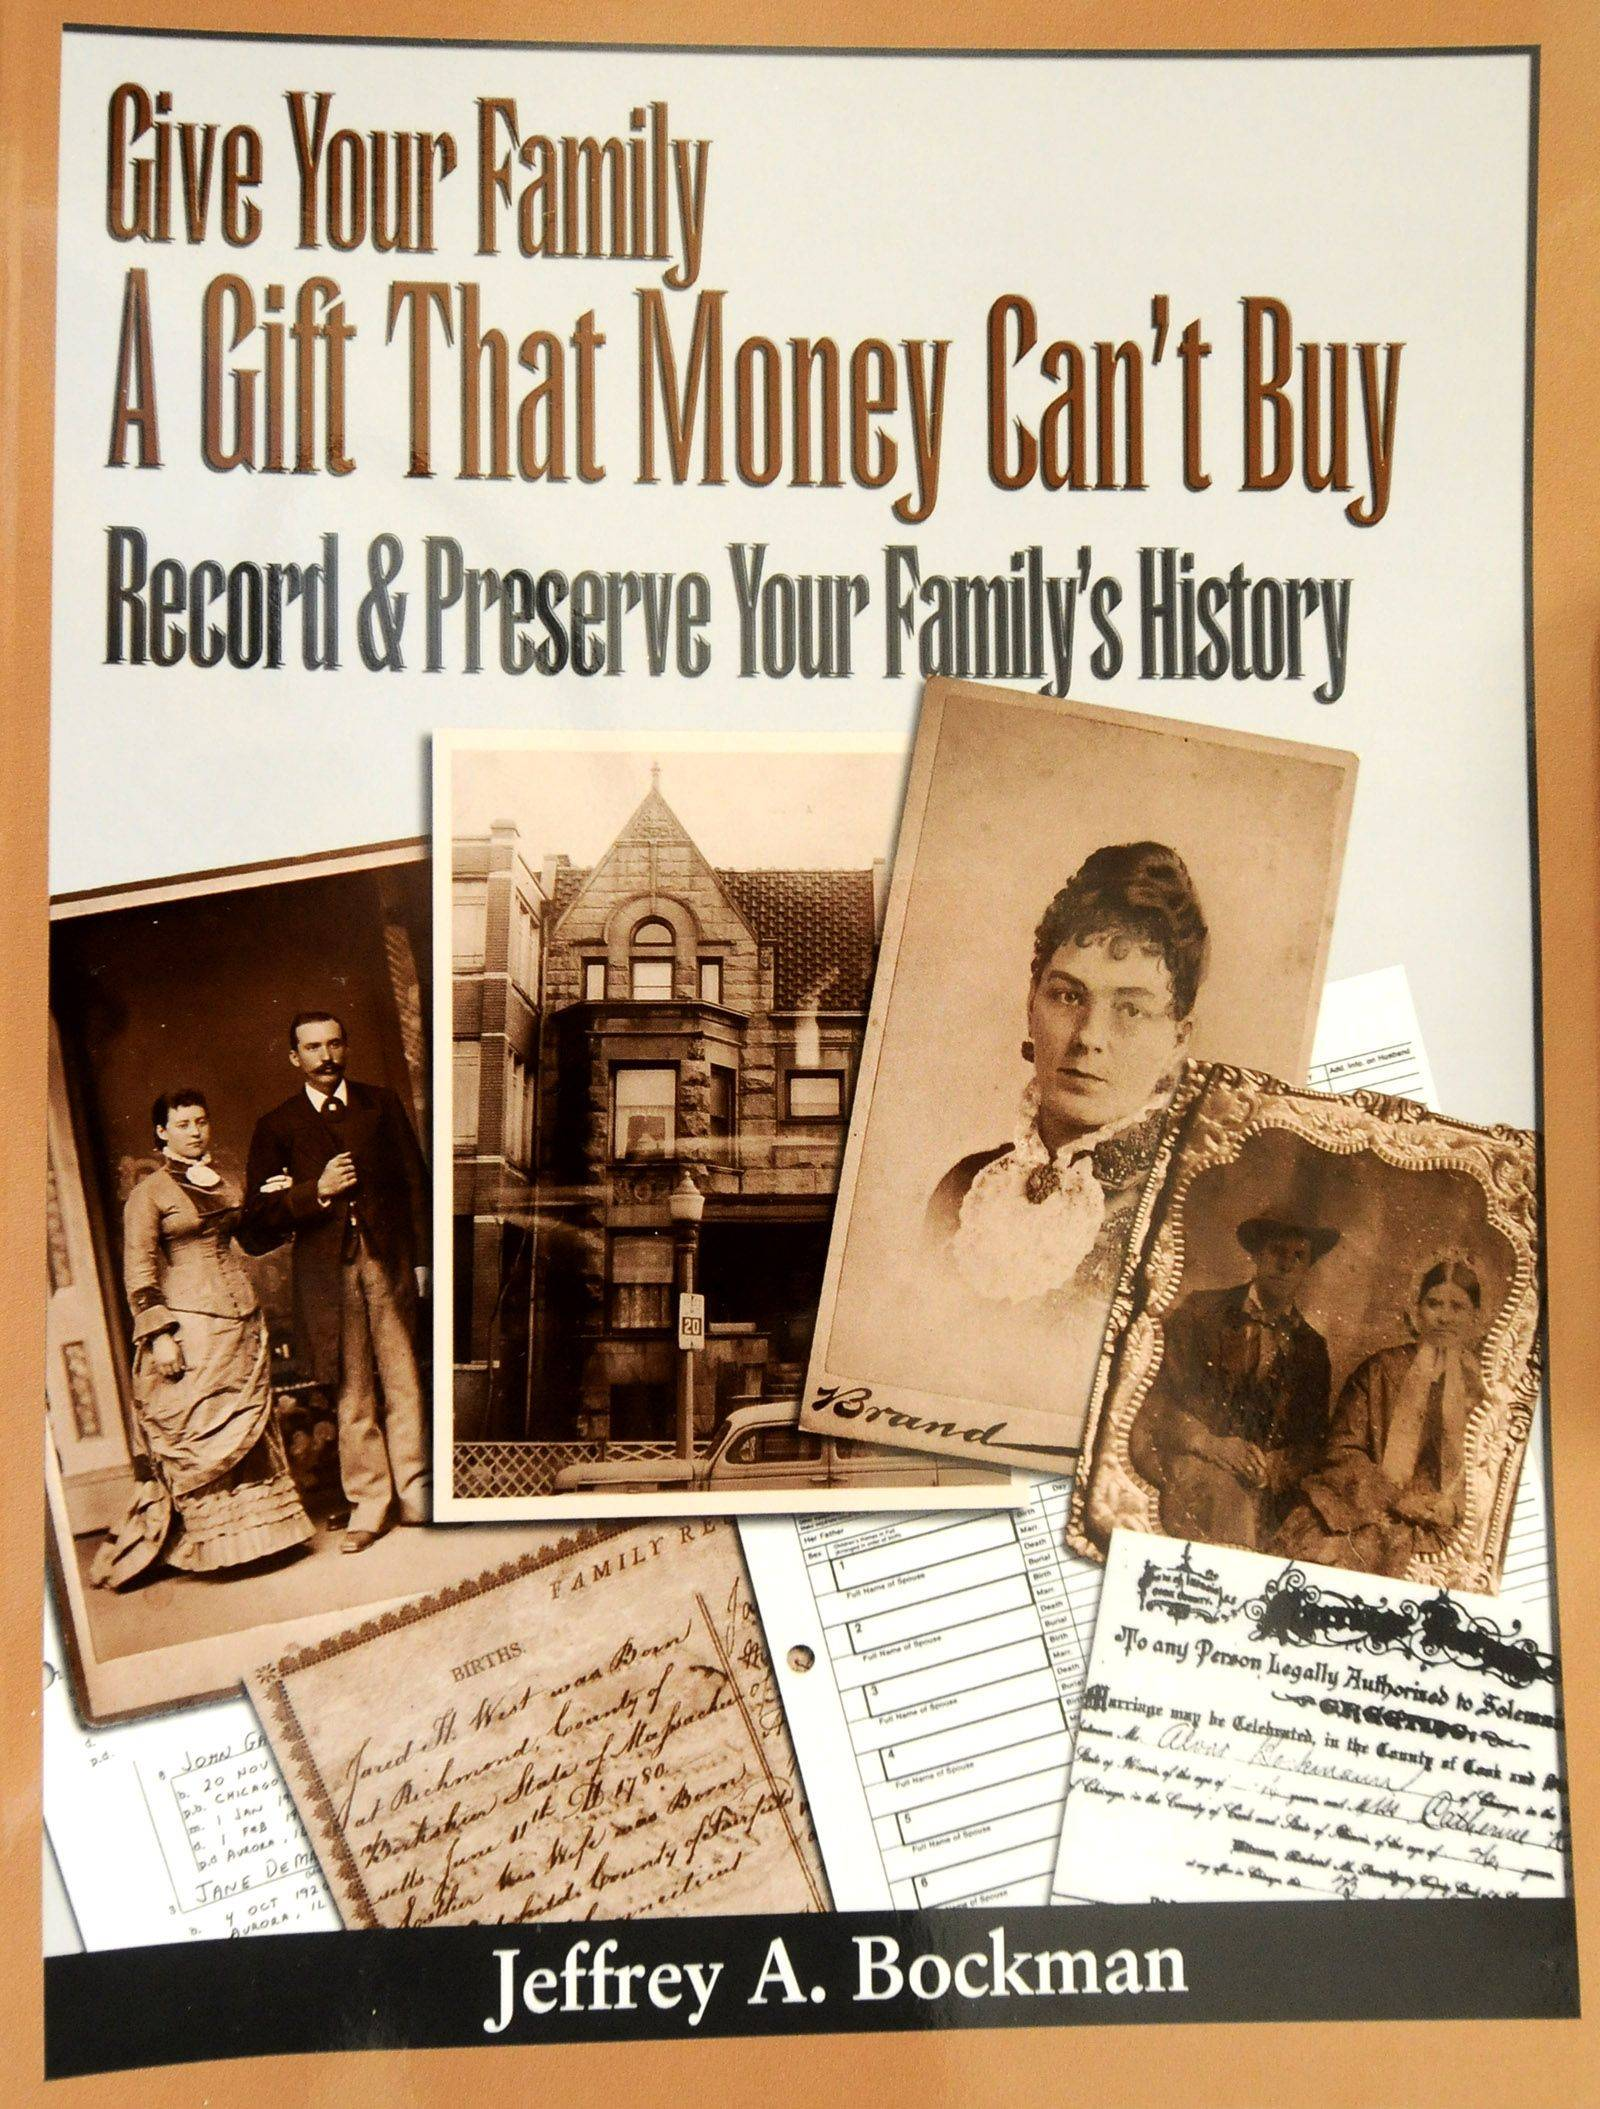 Jeff Bockman has written a guide and workbook for people who want to preserve and research their family history.